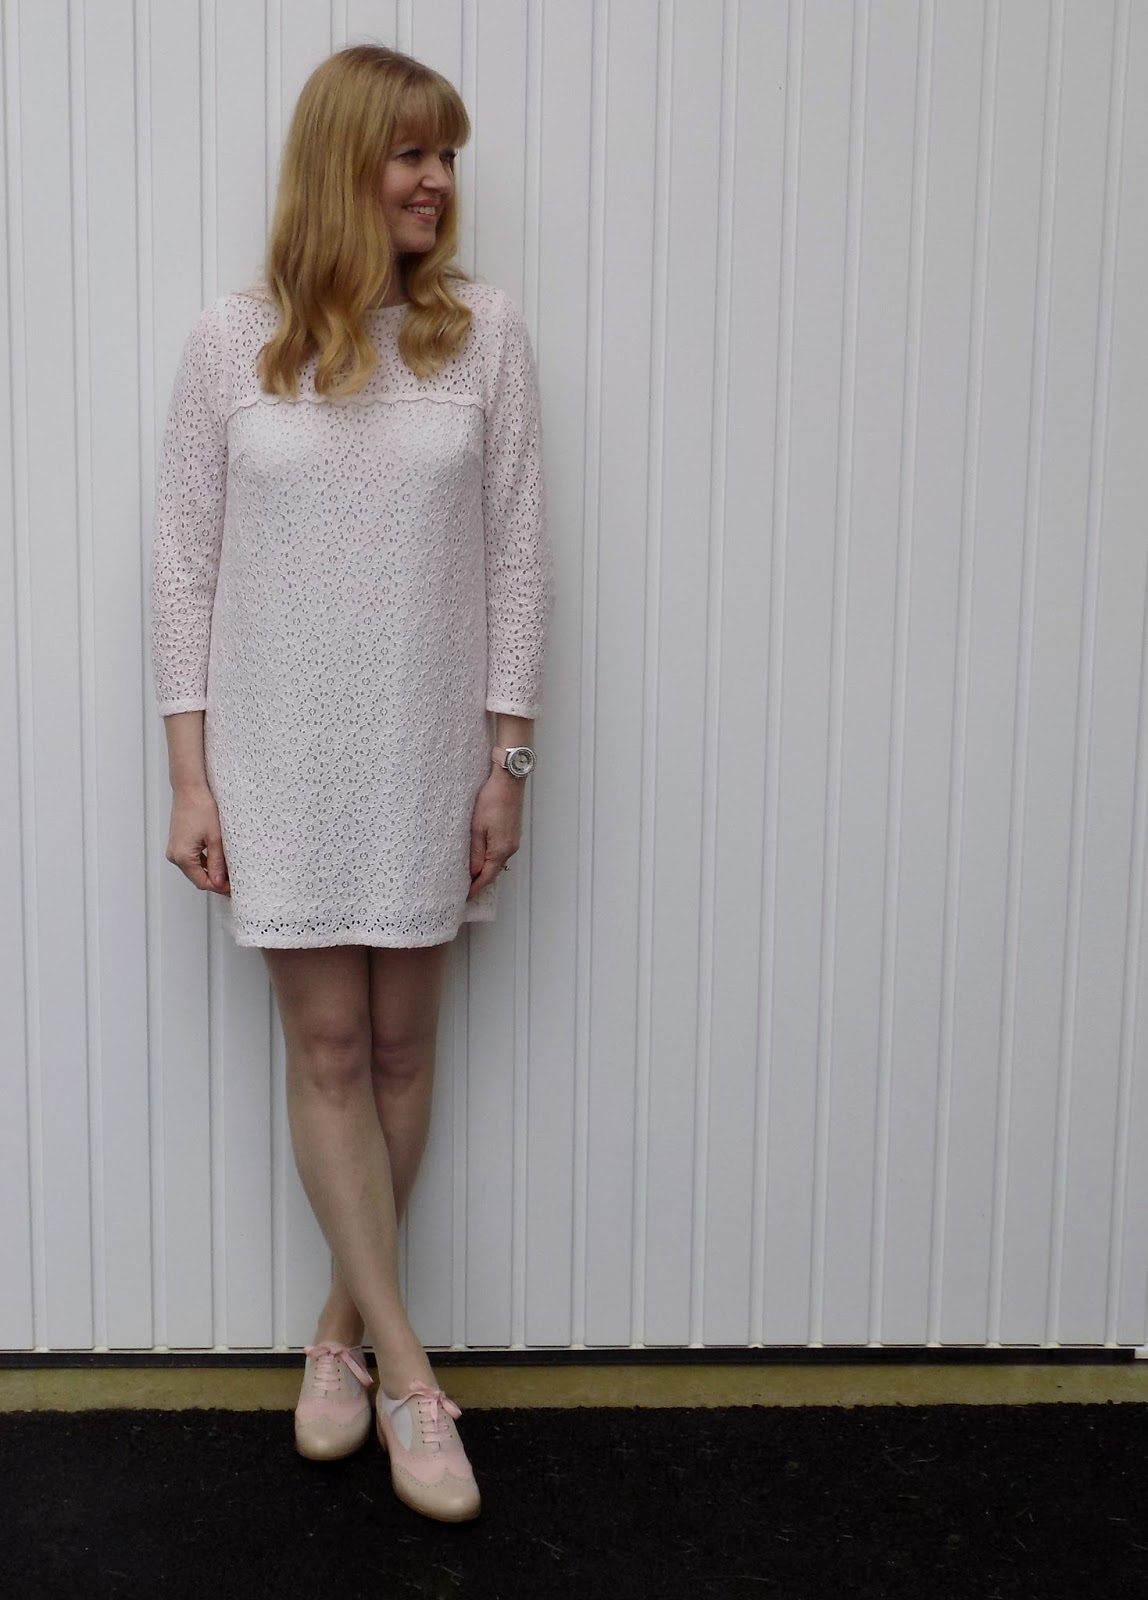 Cream Lace shift dress and pink brogues